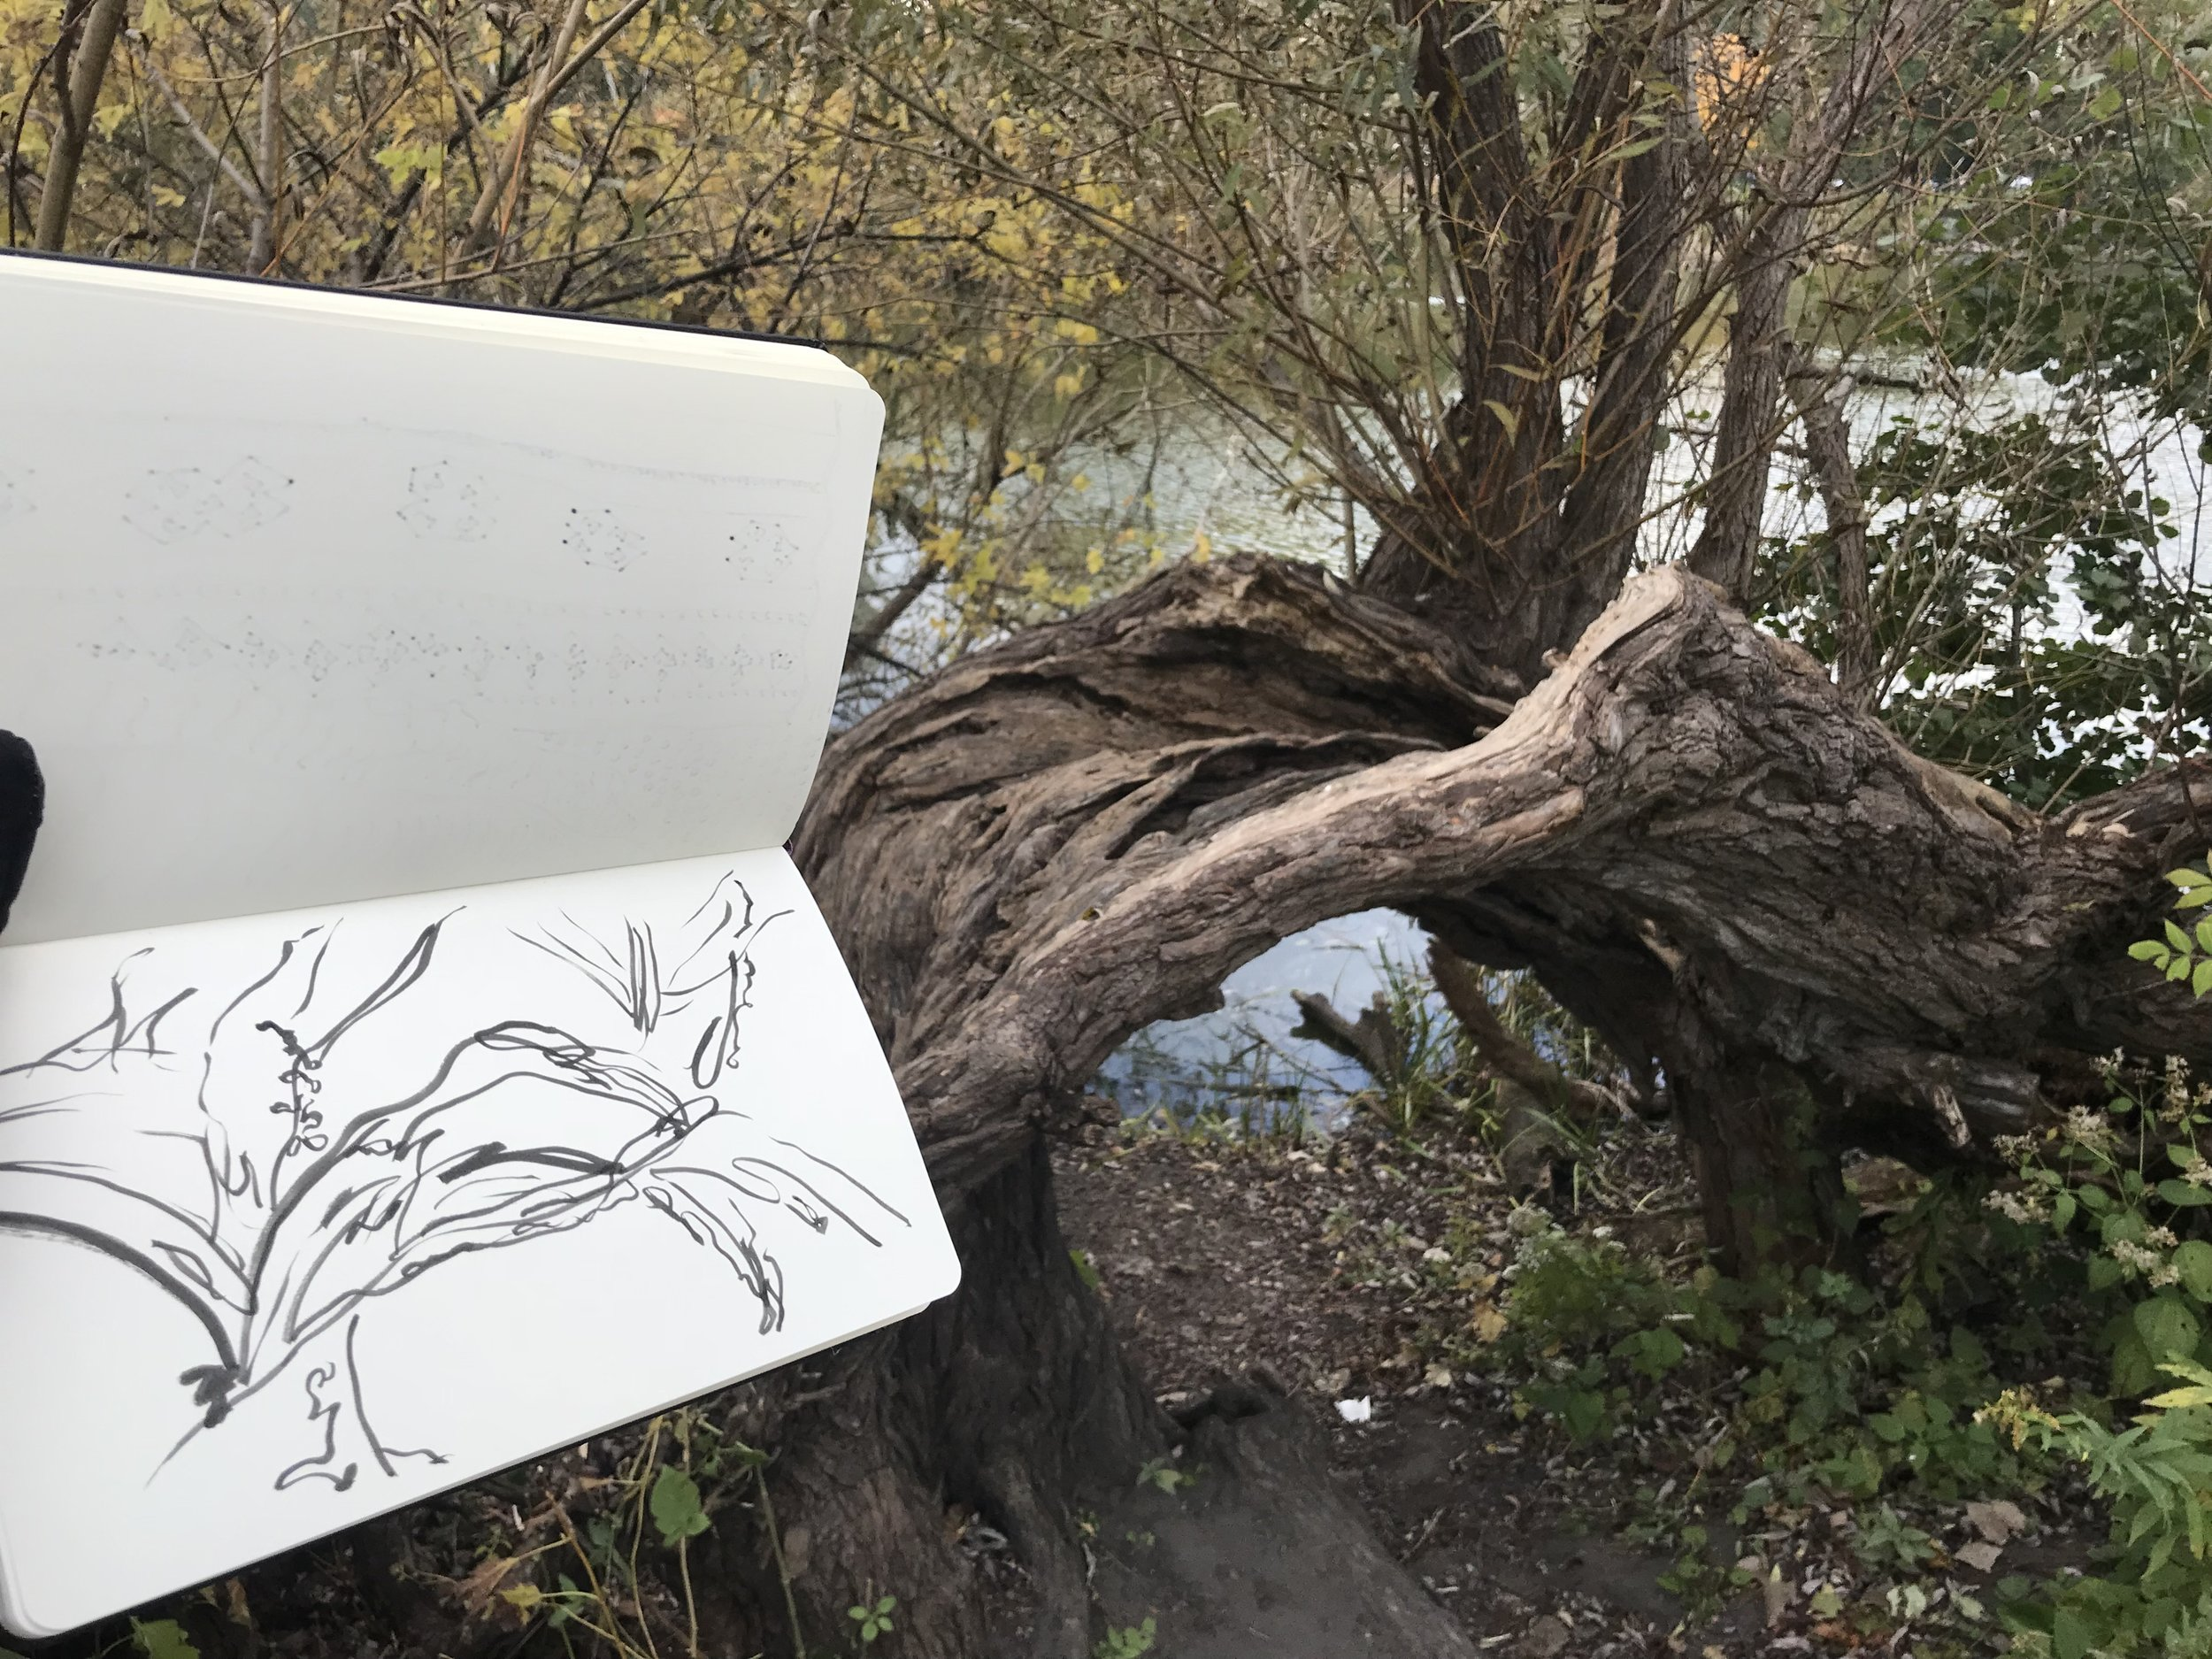 kate lewis art.tree sketch and photo.jpg